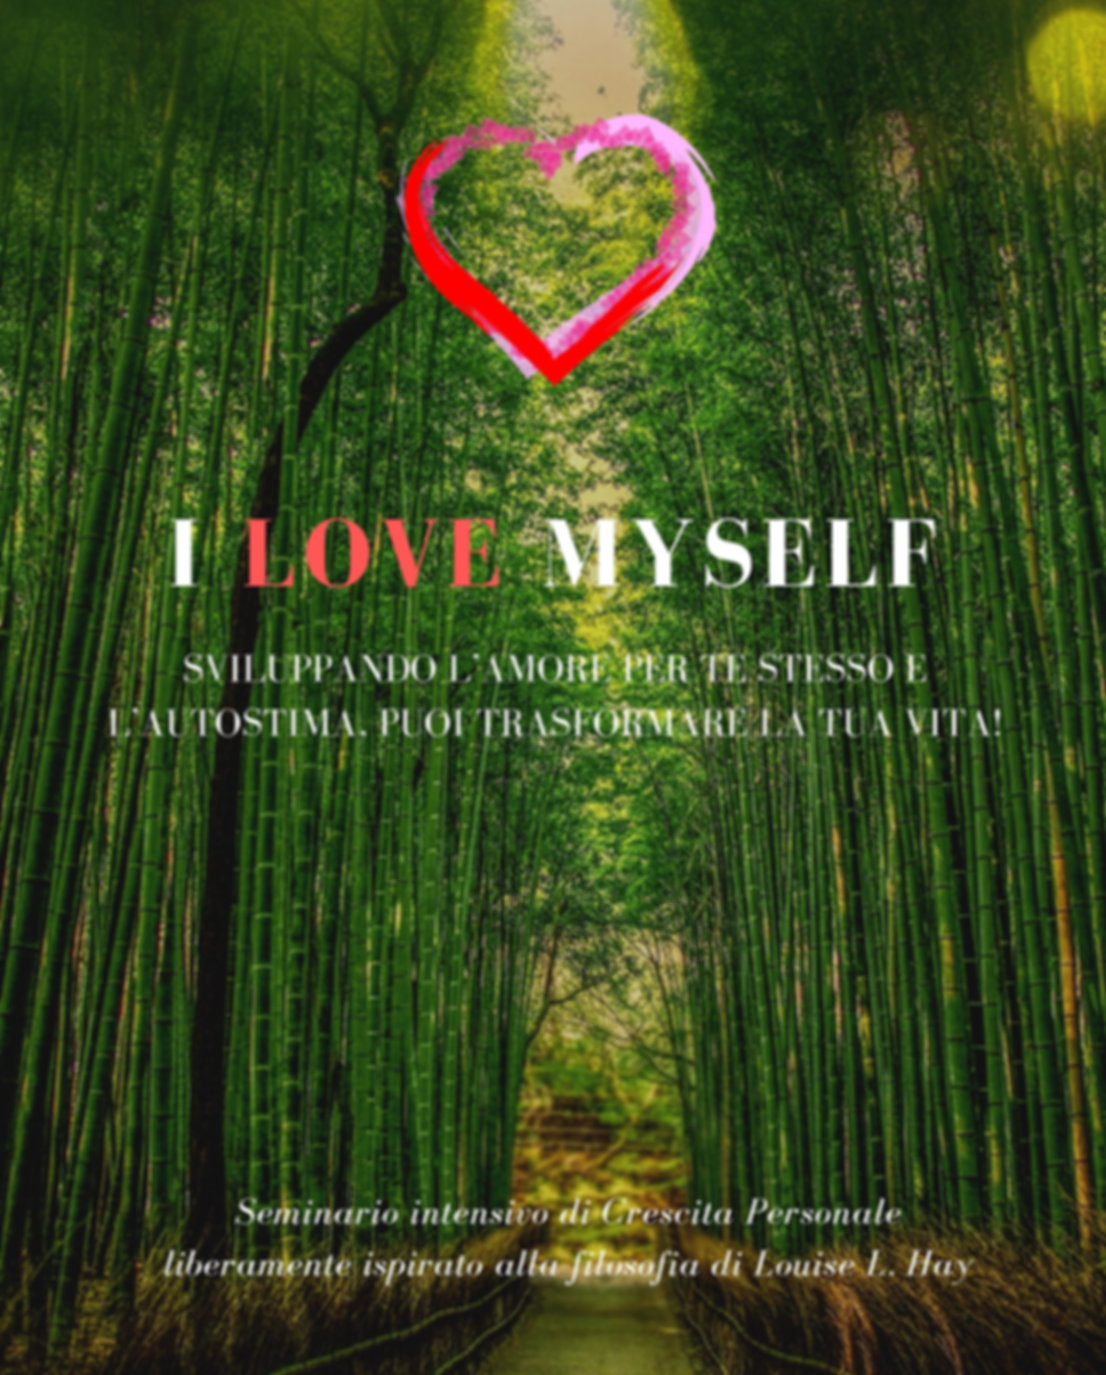 I love my self 1  InArmo_edited.jpg